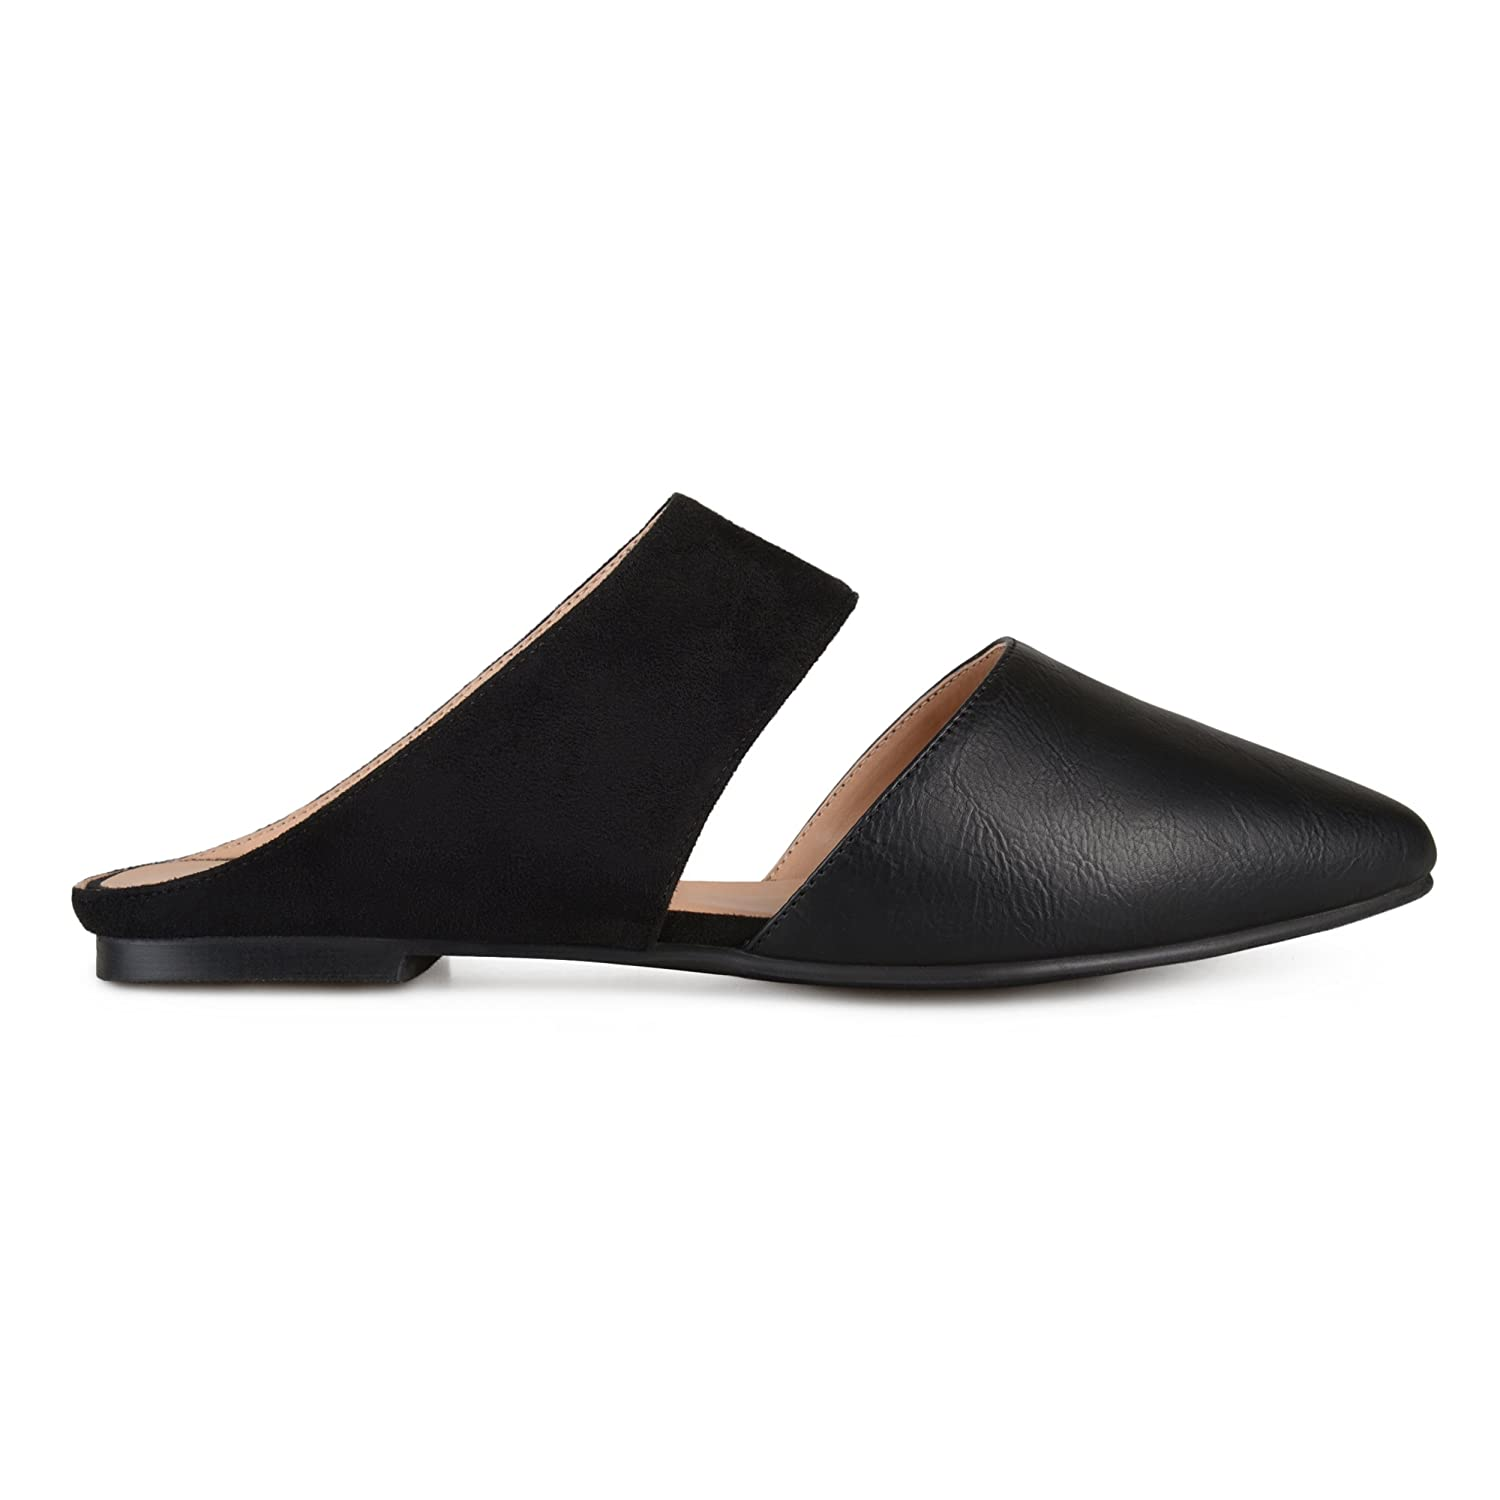 0dce5f31bf0 Womens Faux Suede Faux Leather Slip-on Mules